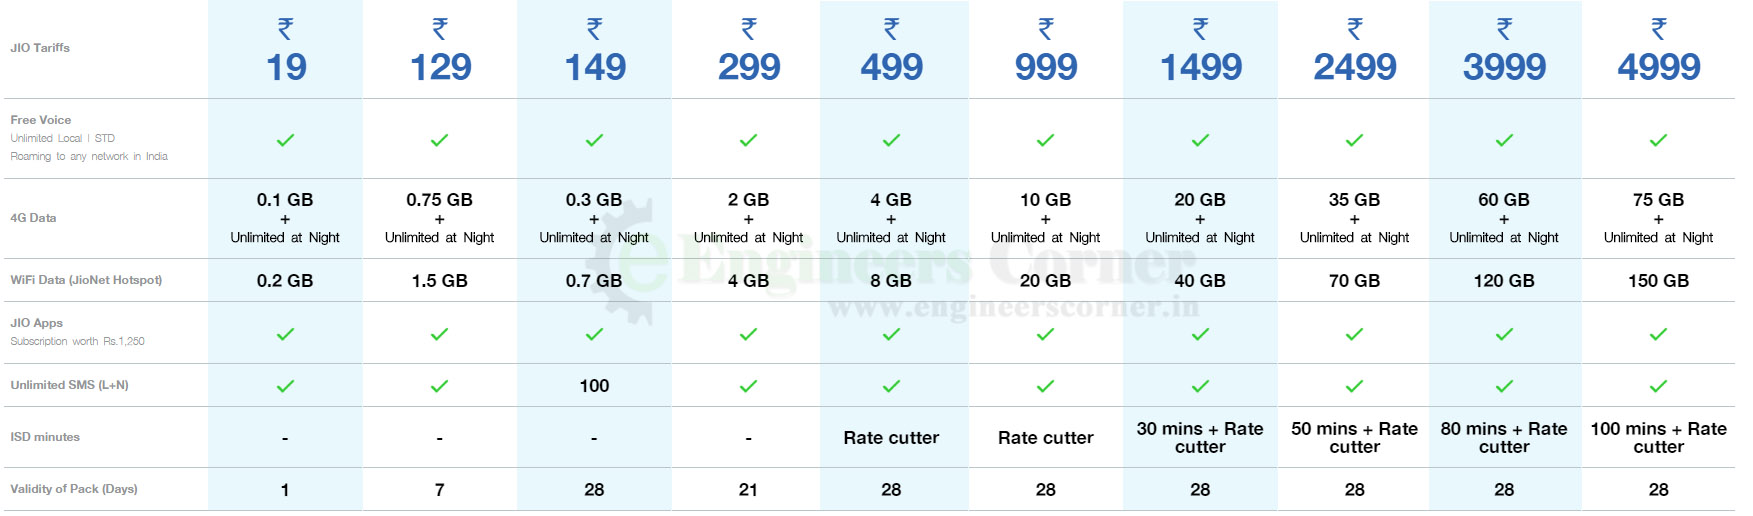 Reliance Jio 4g Launched Today Welcome Offer Plans